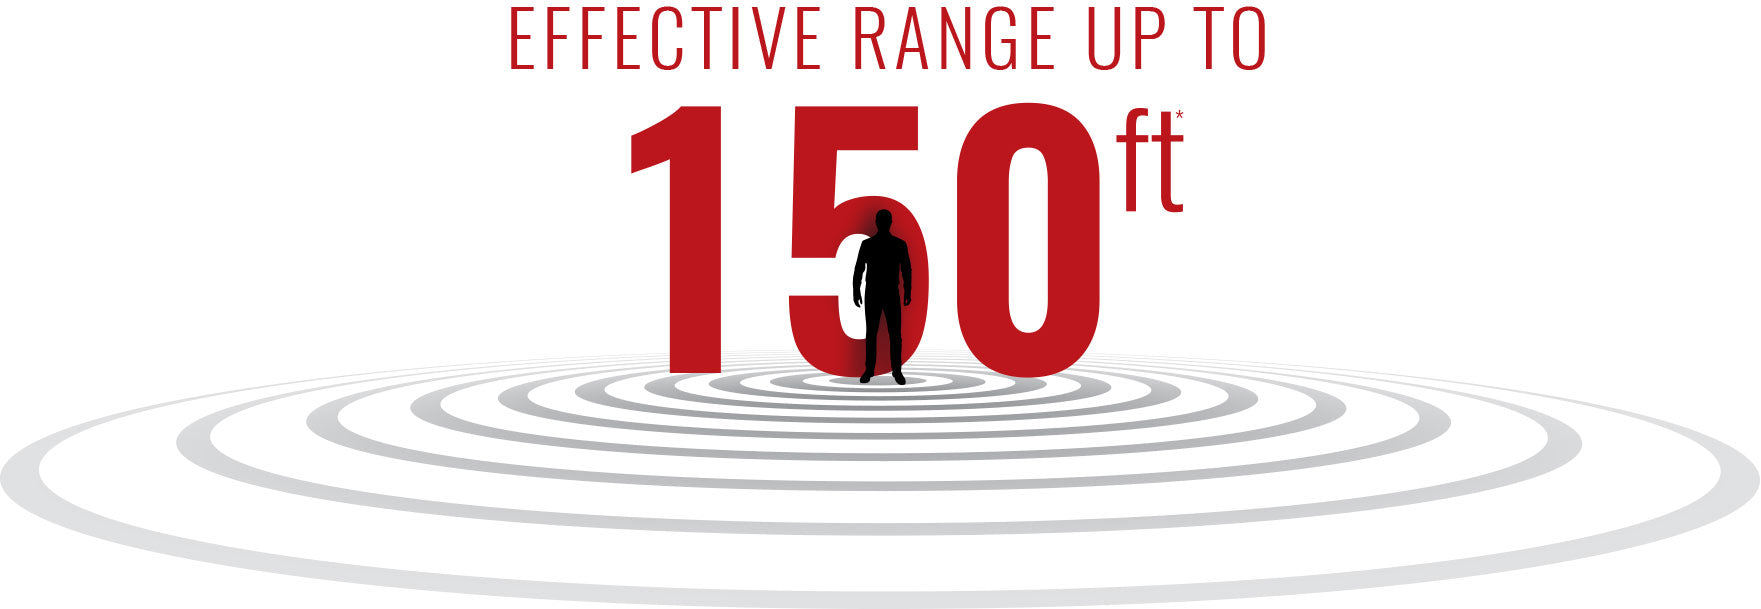 Effective Range Up To 150ft